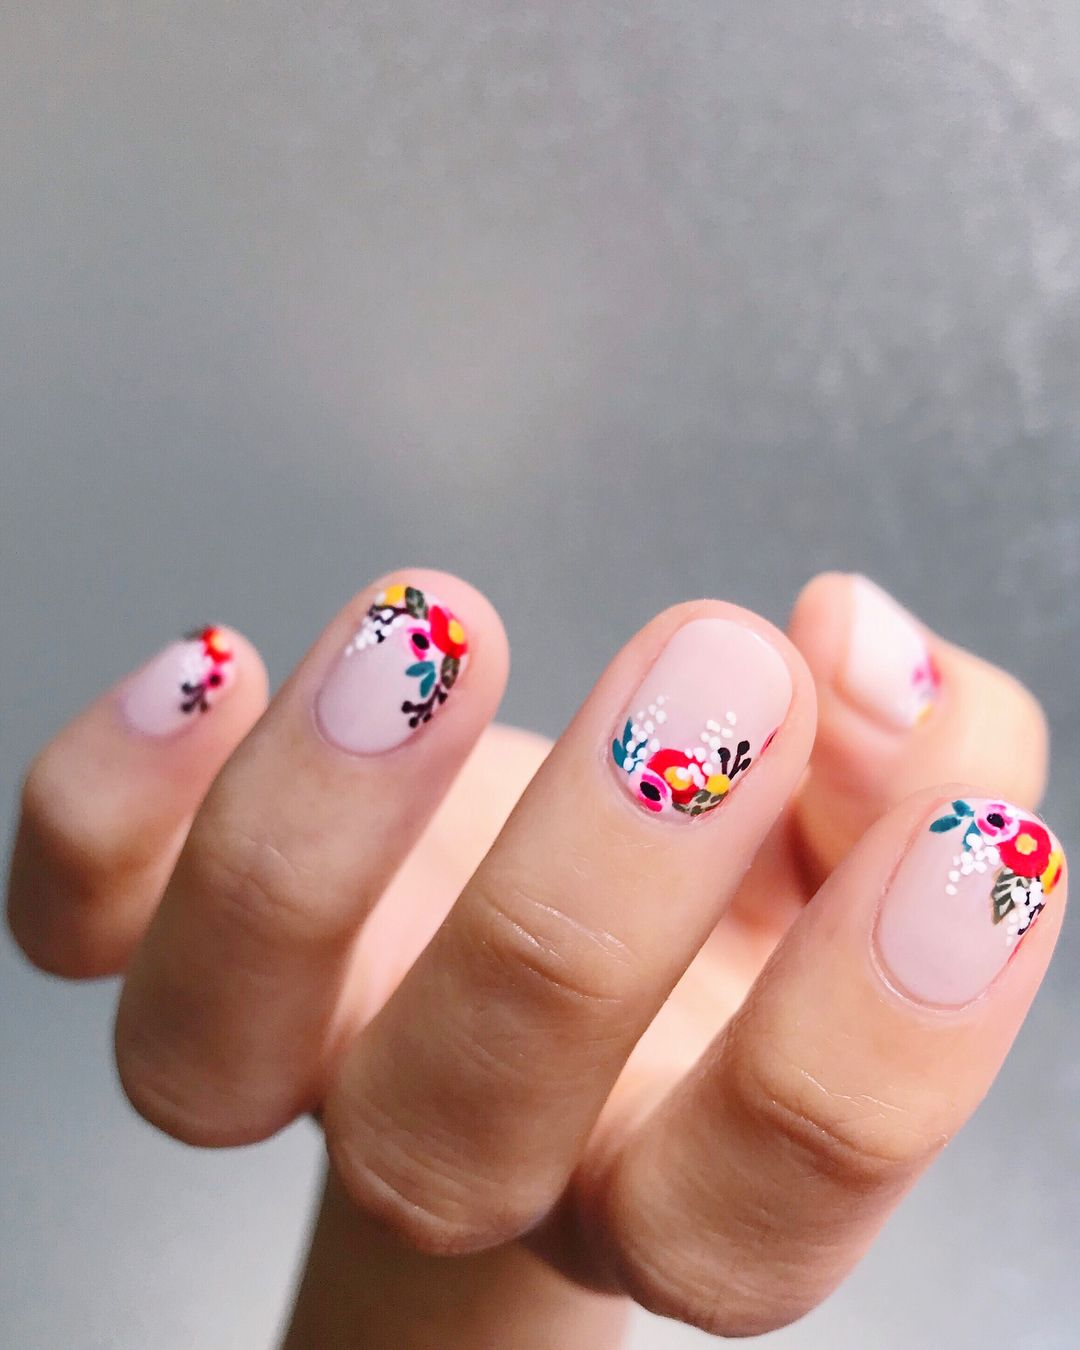 Pin by heather meadows on nails in pinterest nails nail